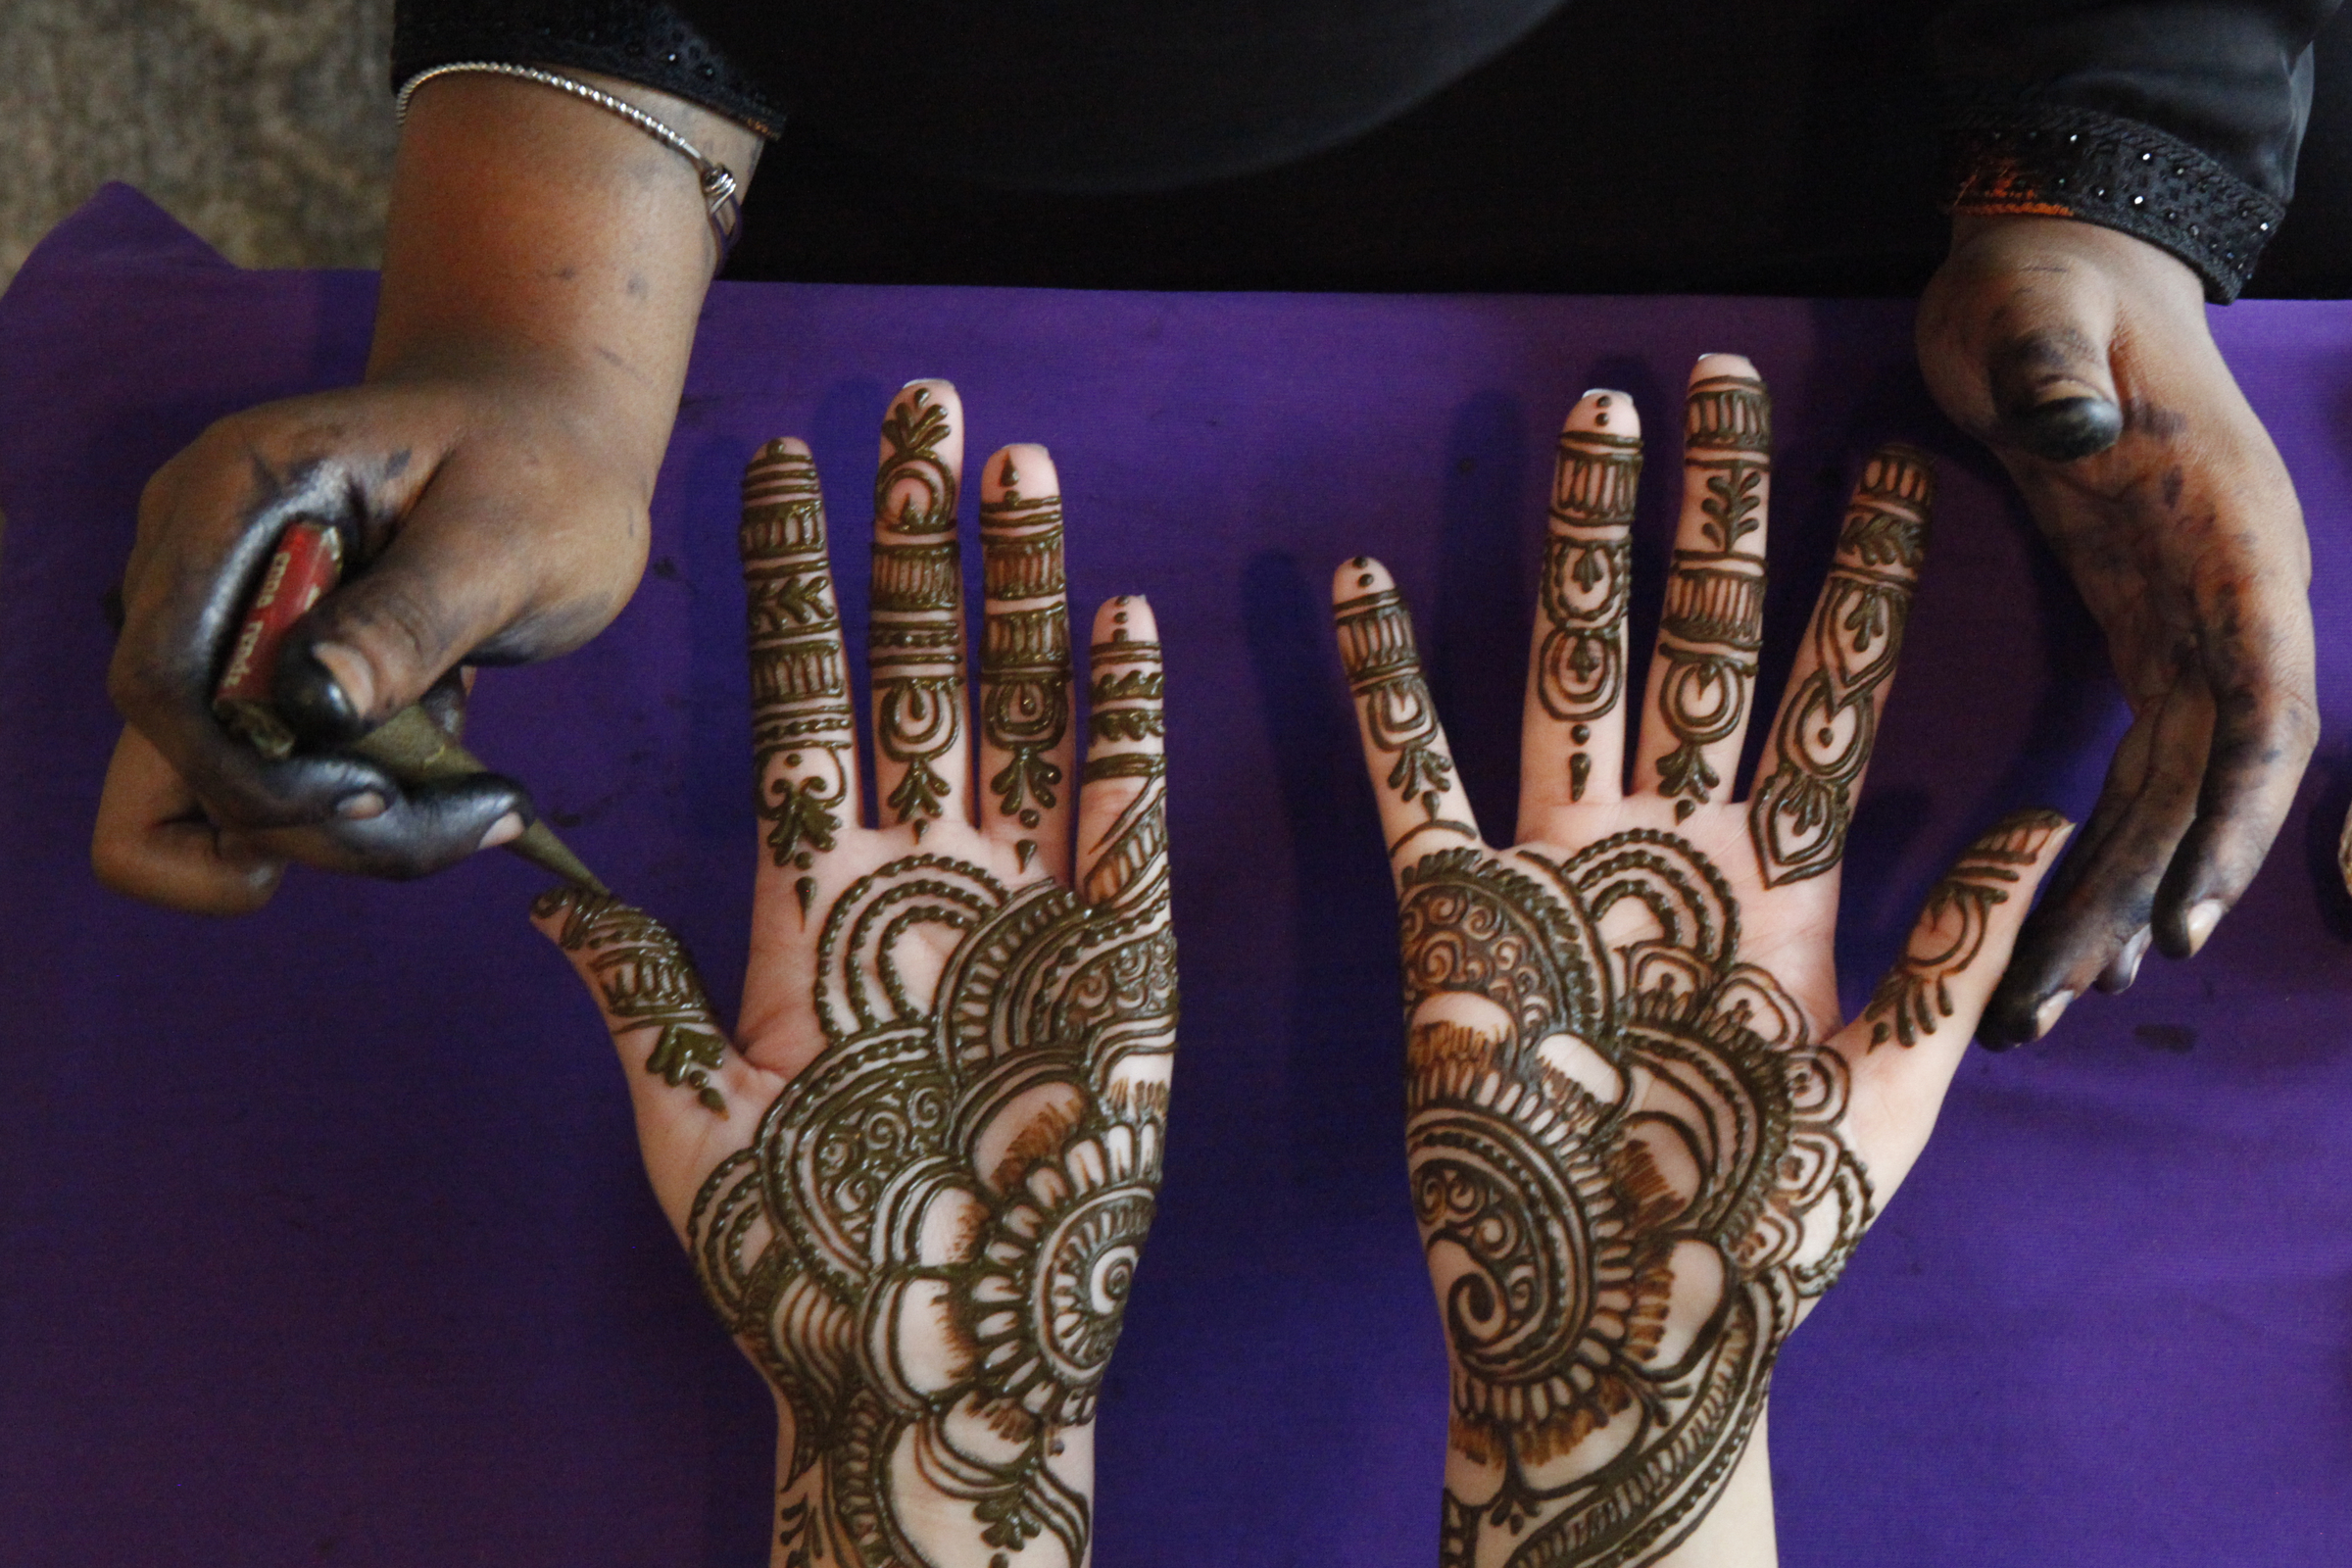 Muslim women get designs drawn on their hands in henna in preparation for Eid al-Fitr, a celebration at the end of Ramadan. This is an important religious holiday for the community.